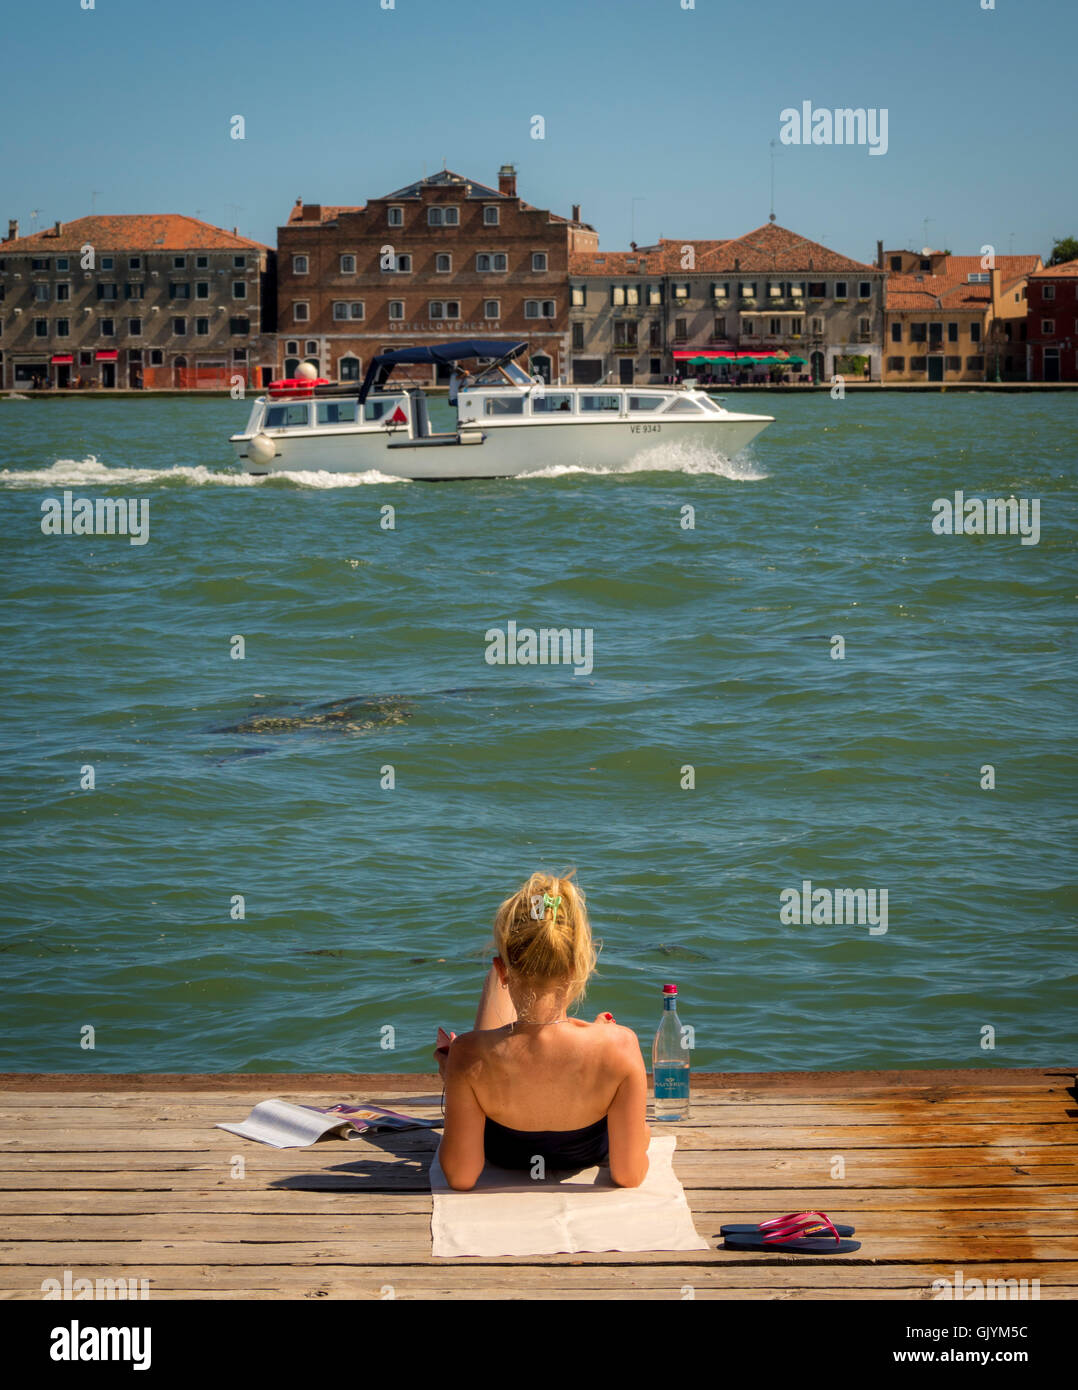 Young female reclining on a wooden jetty on the Canale della Giudecca, with a boat and the island of Giudecca in - Stock Image